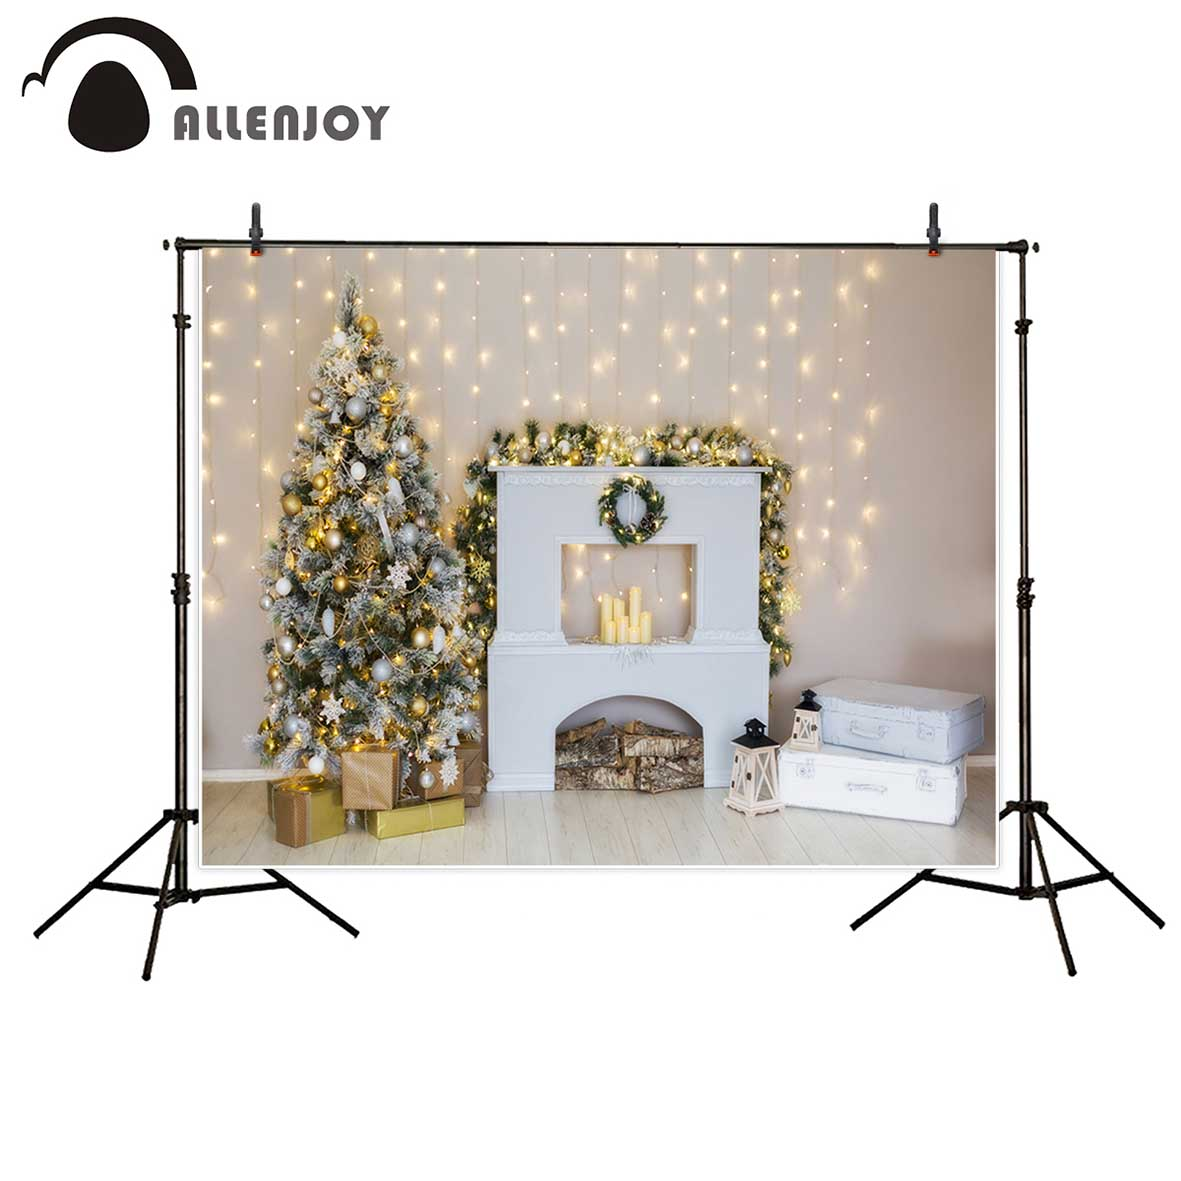 Allenjoy photo backdrops Christmas tree glitter indoor stove family party background photo printer fantasy props for kids retro background christmas photo props photography screen backdrops for children vinyl 7x5ft or 5x3ft christmas033